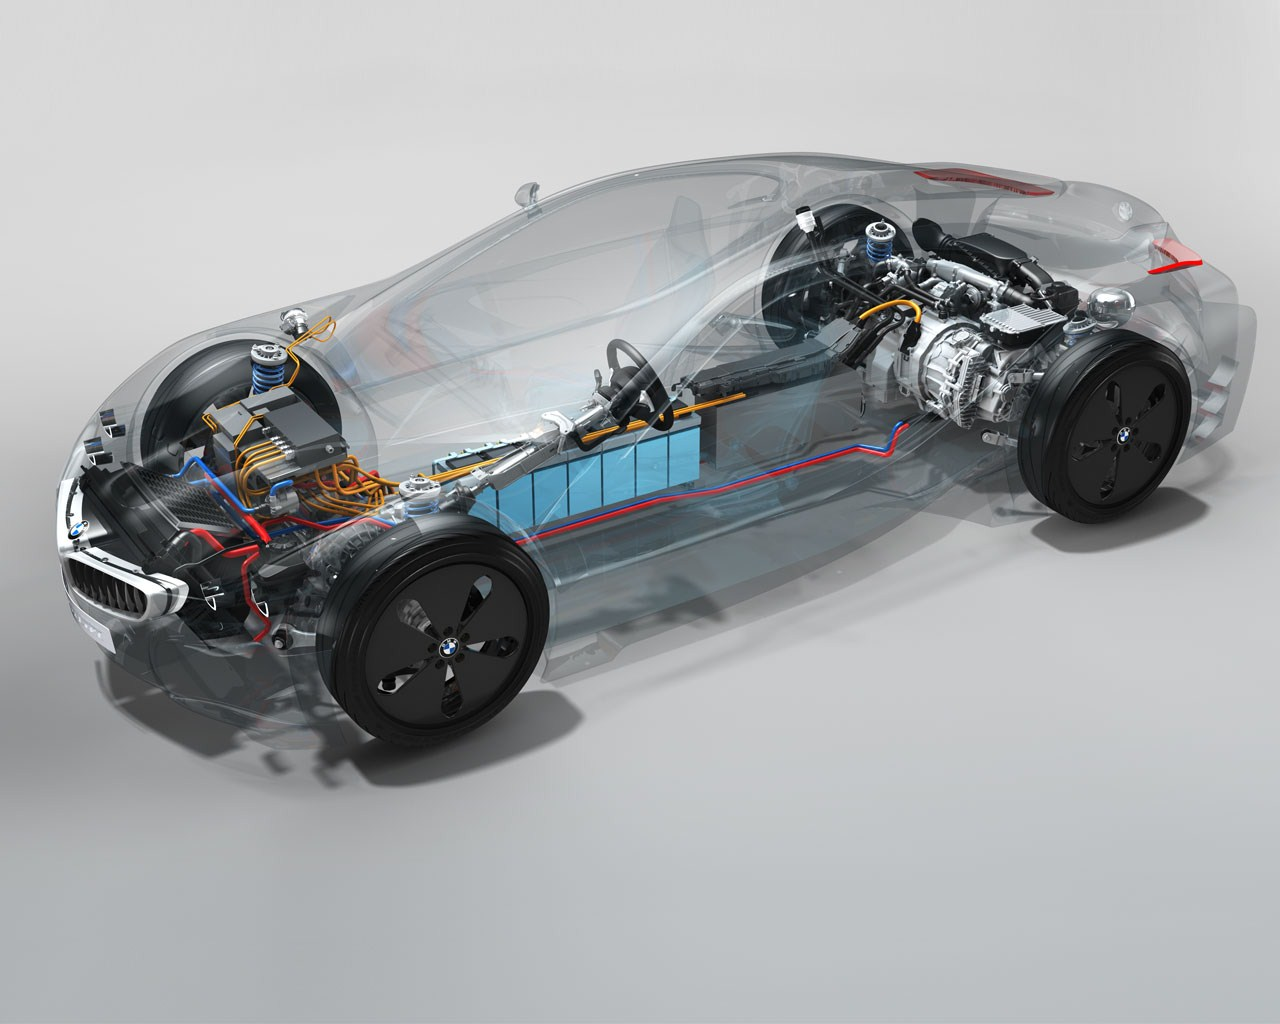 New Trends In Automotive Mobility Porsche 918 Spyder Engine Diagram